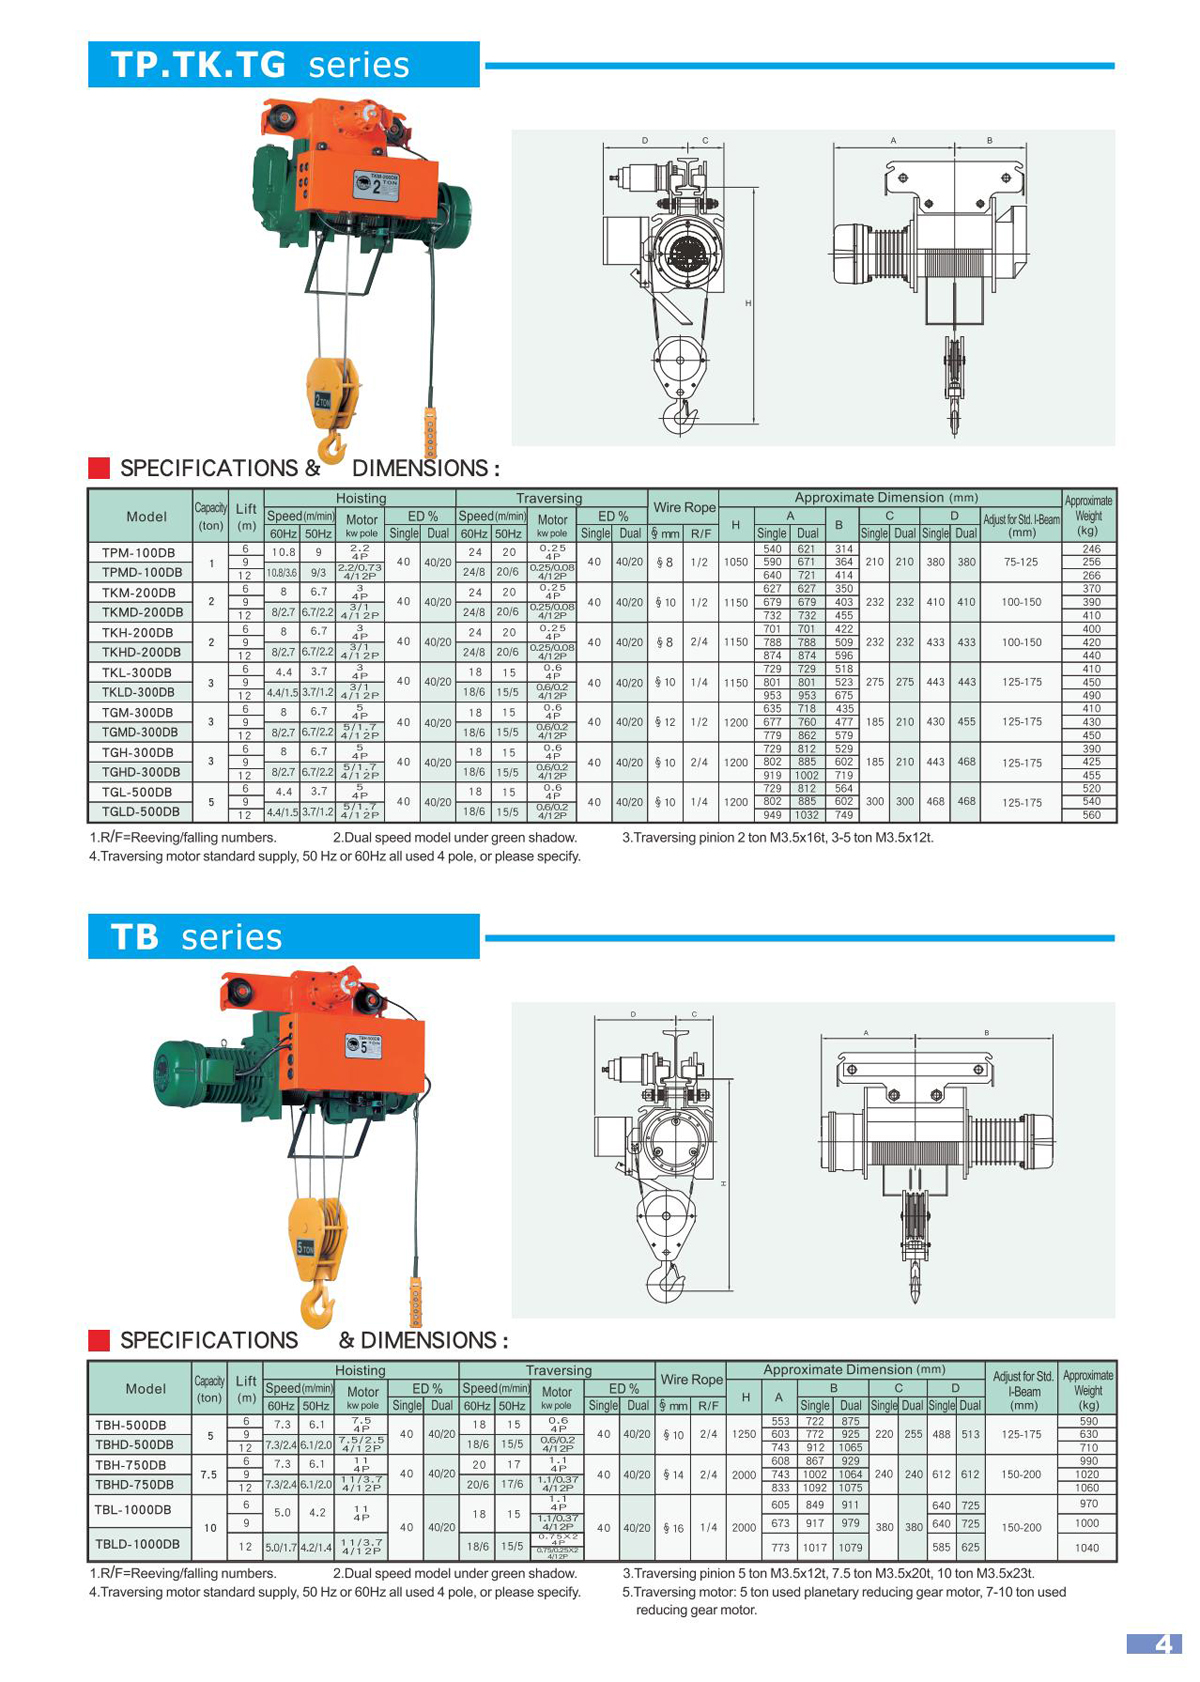 9000w Generator Transfer Switch Diagram together with 496800 Help Deciding Transfer Switch Buy Genertator also Demag 5 Ton Hoist Trolley Wiring Diagrams additionally Transfer Panel Wiring Diagram likewise Generac Manual Transfer Switch Installation Wiring Diagrams. on 9000w generator transfer switch diagram